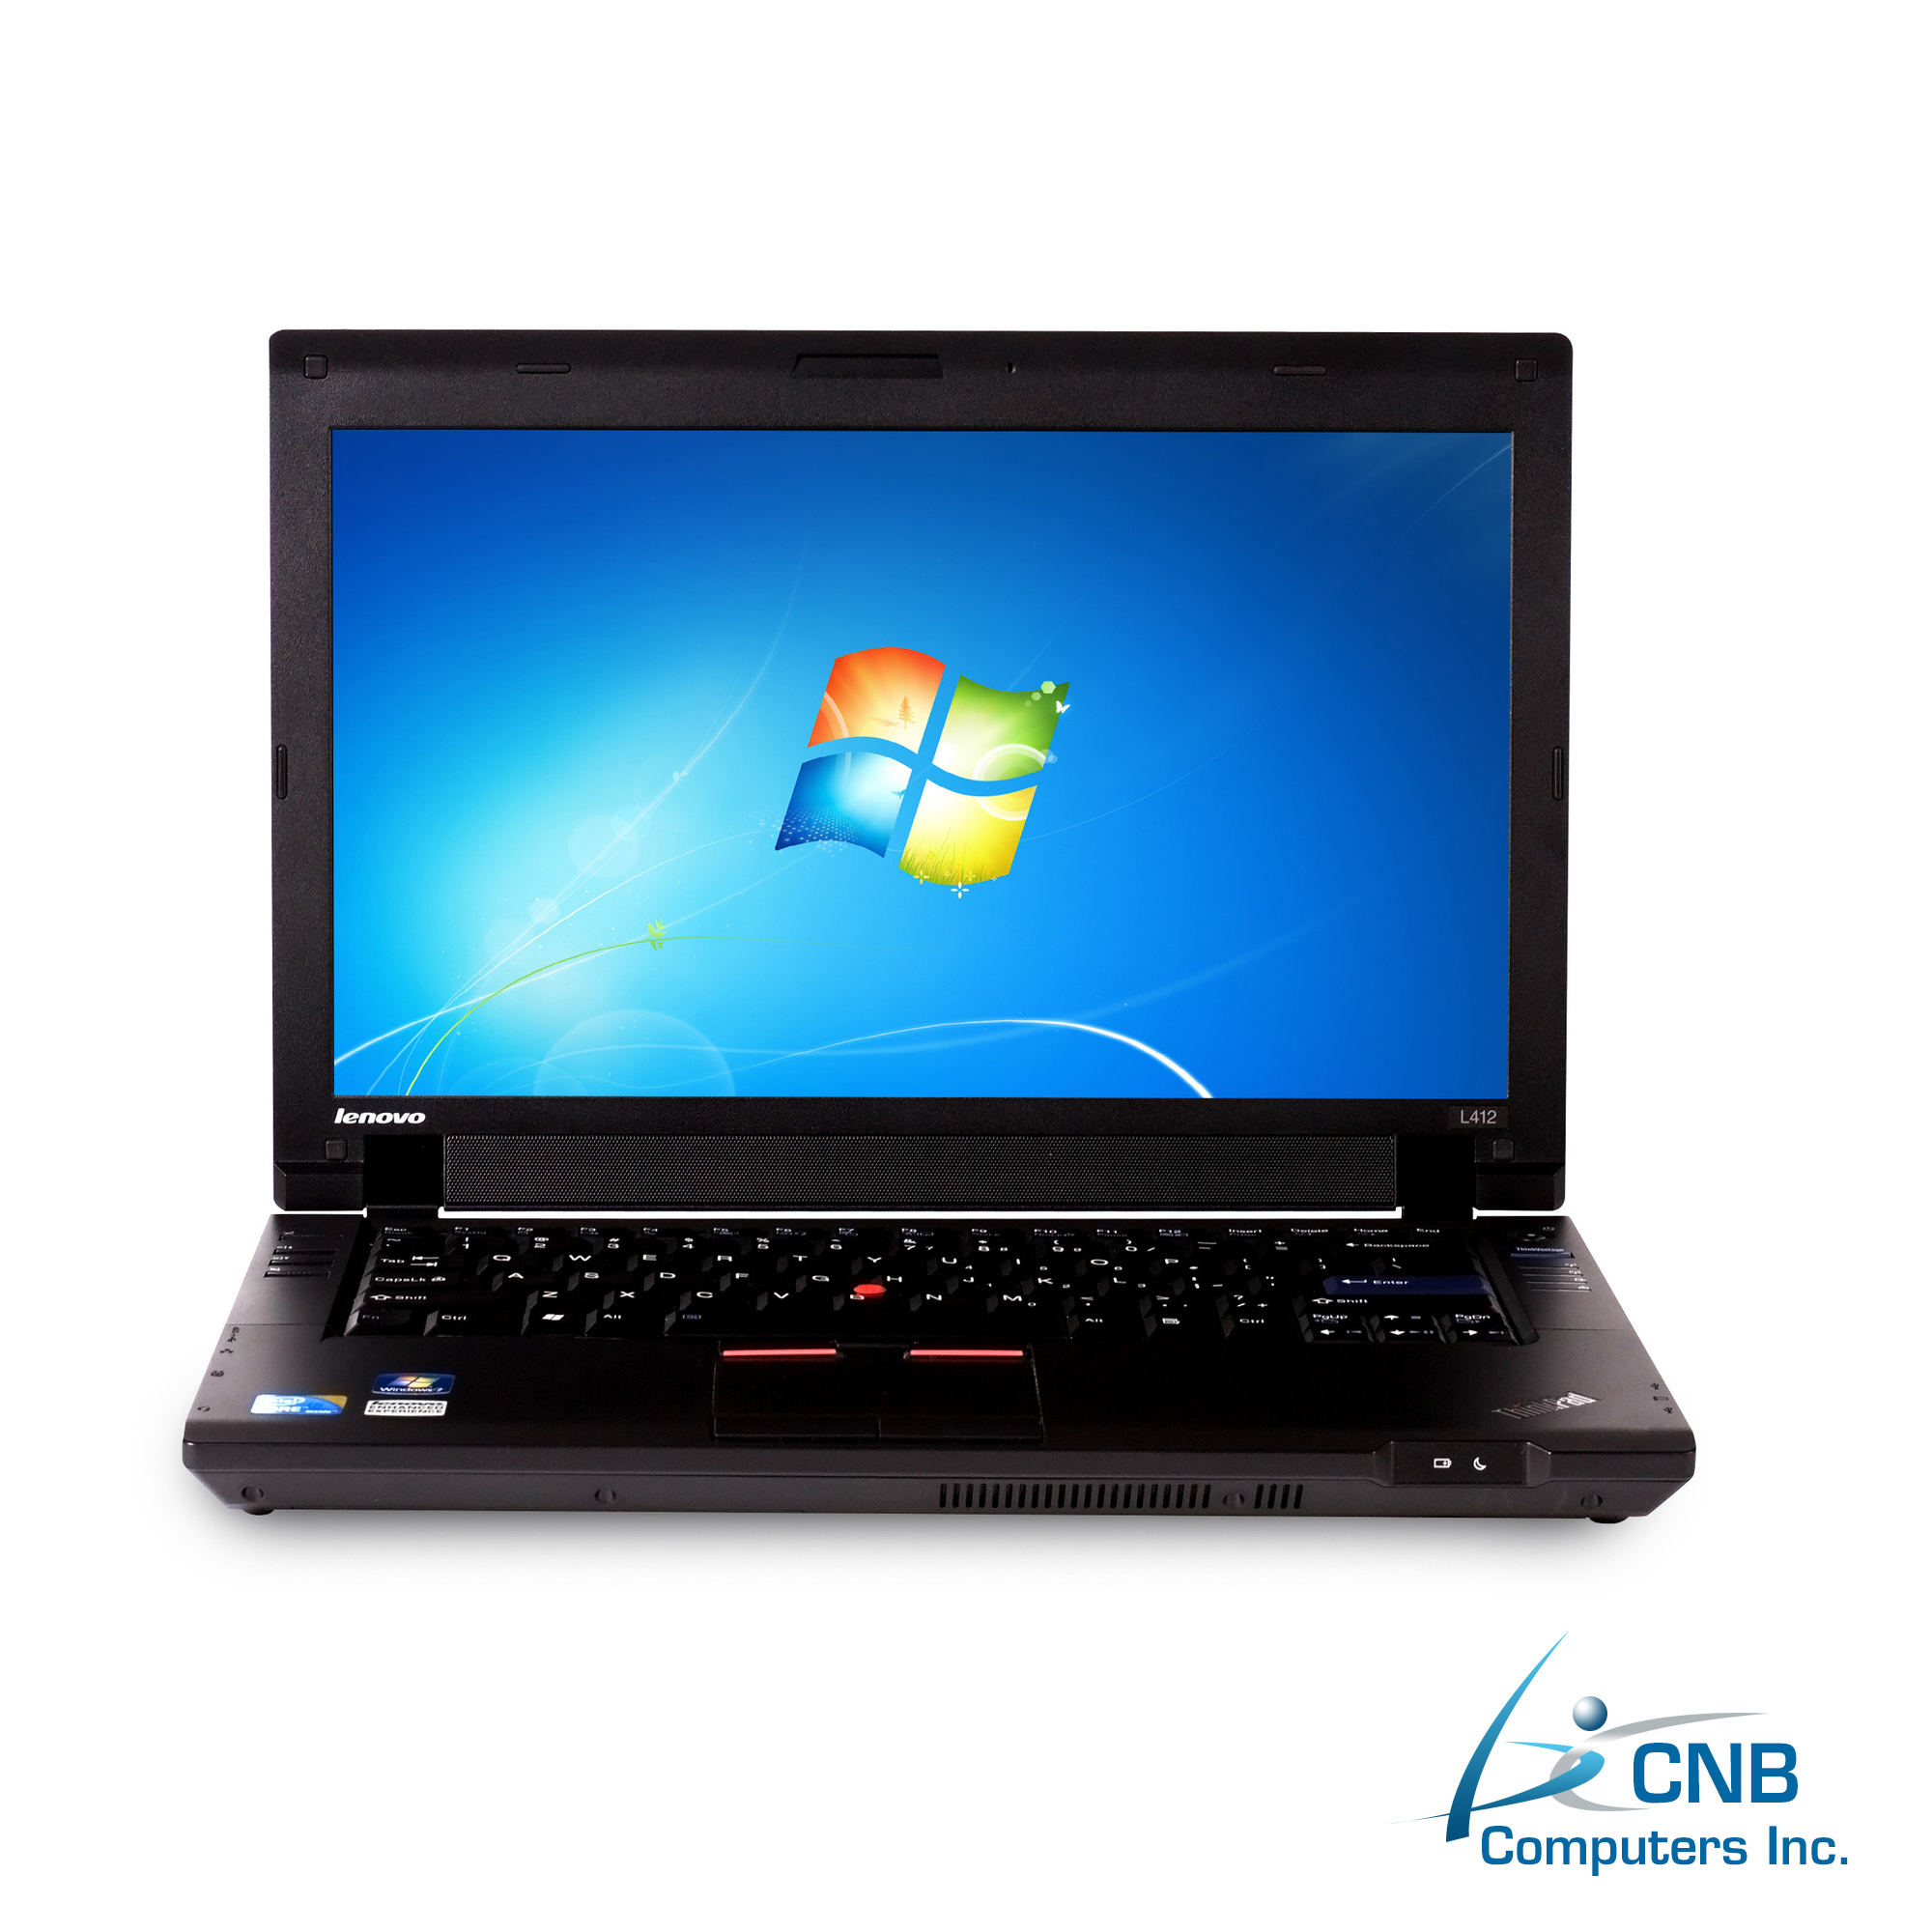 Home  gt  gt  Brand  gt  gt  Lenovo  gt  gt  LENOVO THINKPAD L412 LAPTOP  4GB  160GB HDD    Lenovo Laptop Thinkpad